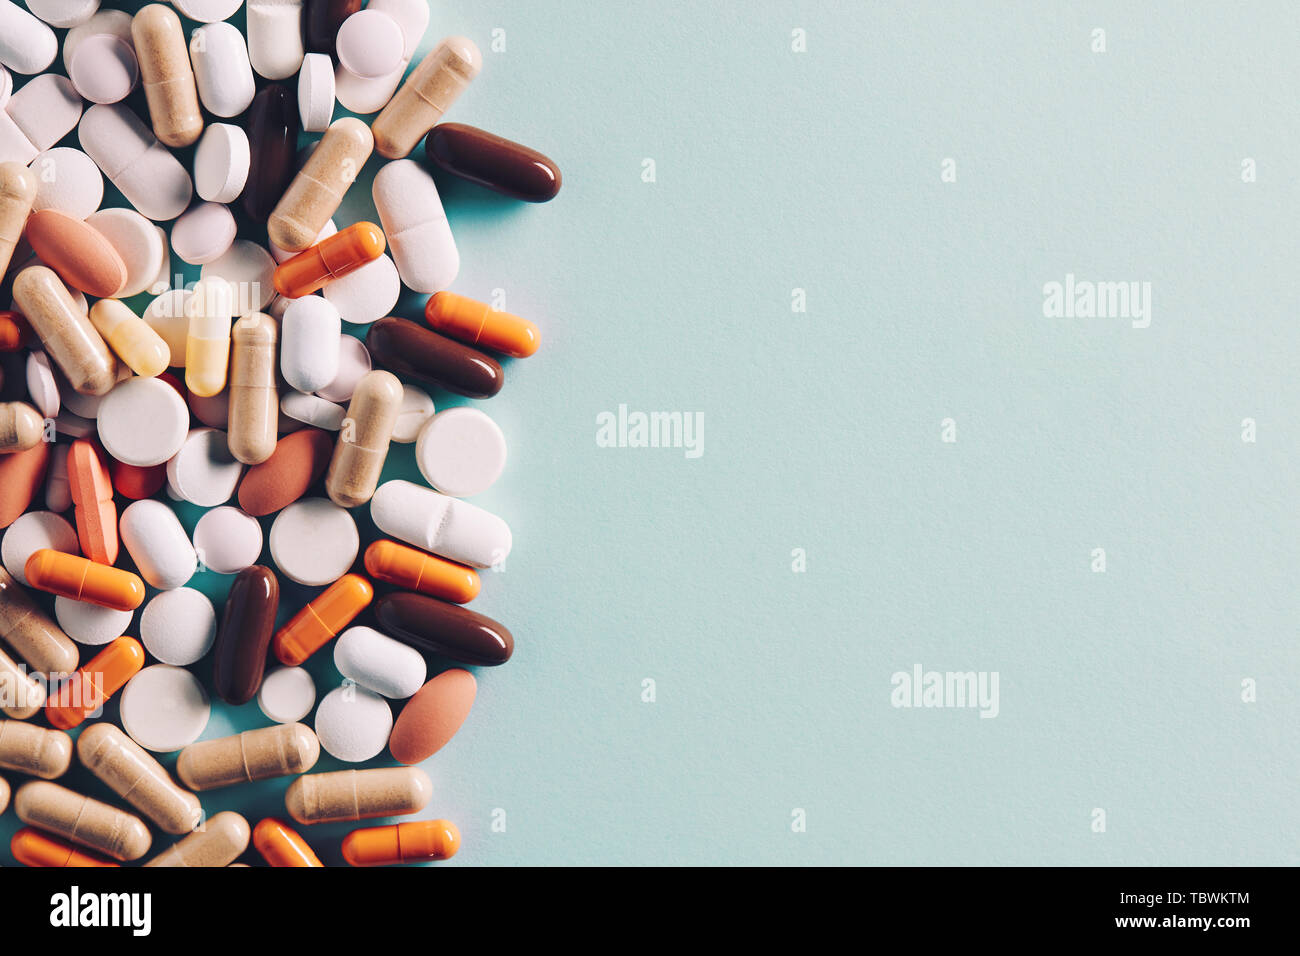 Heap of of colorful pills tablets and capsules with copy space for text. Top down view. Stock Photo